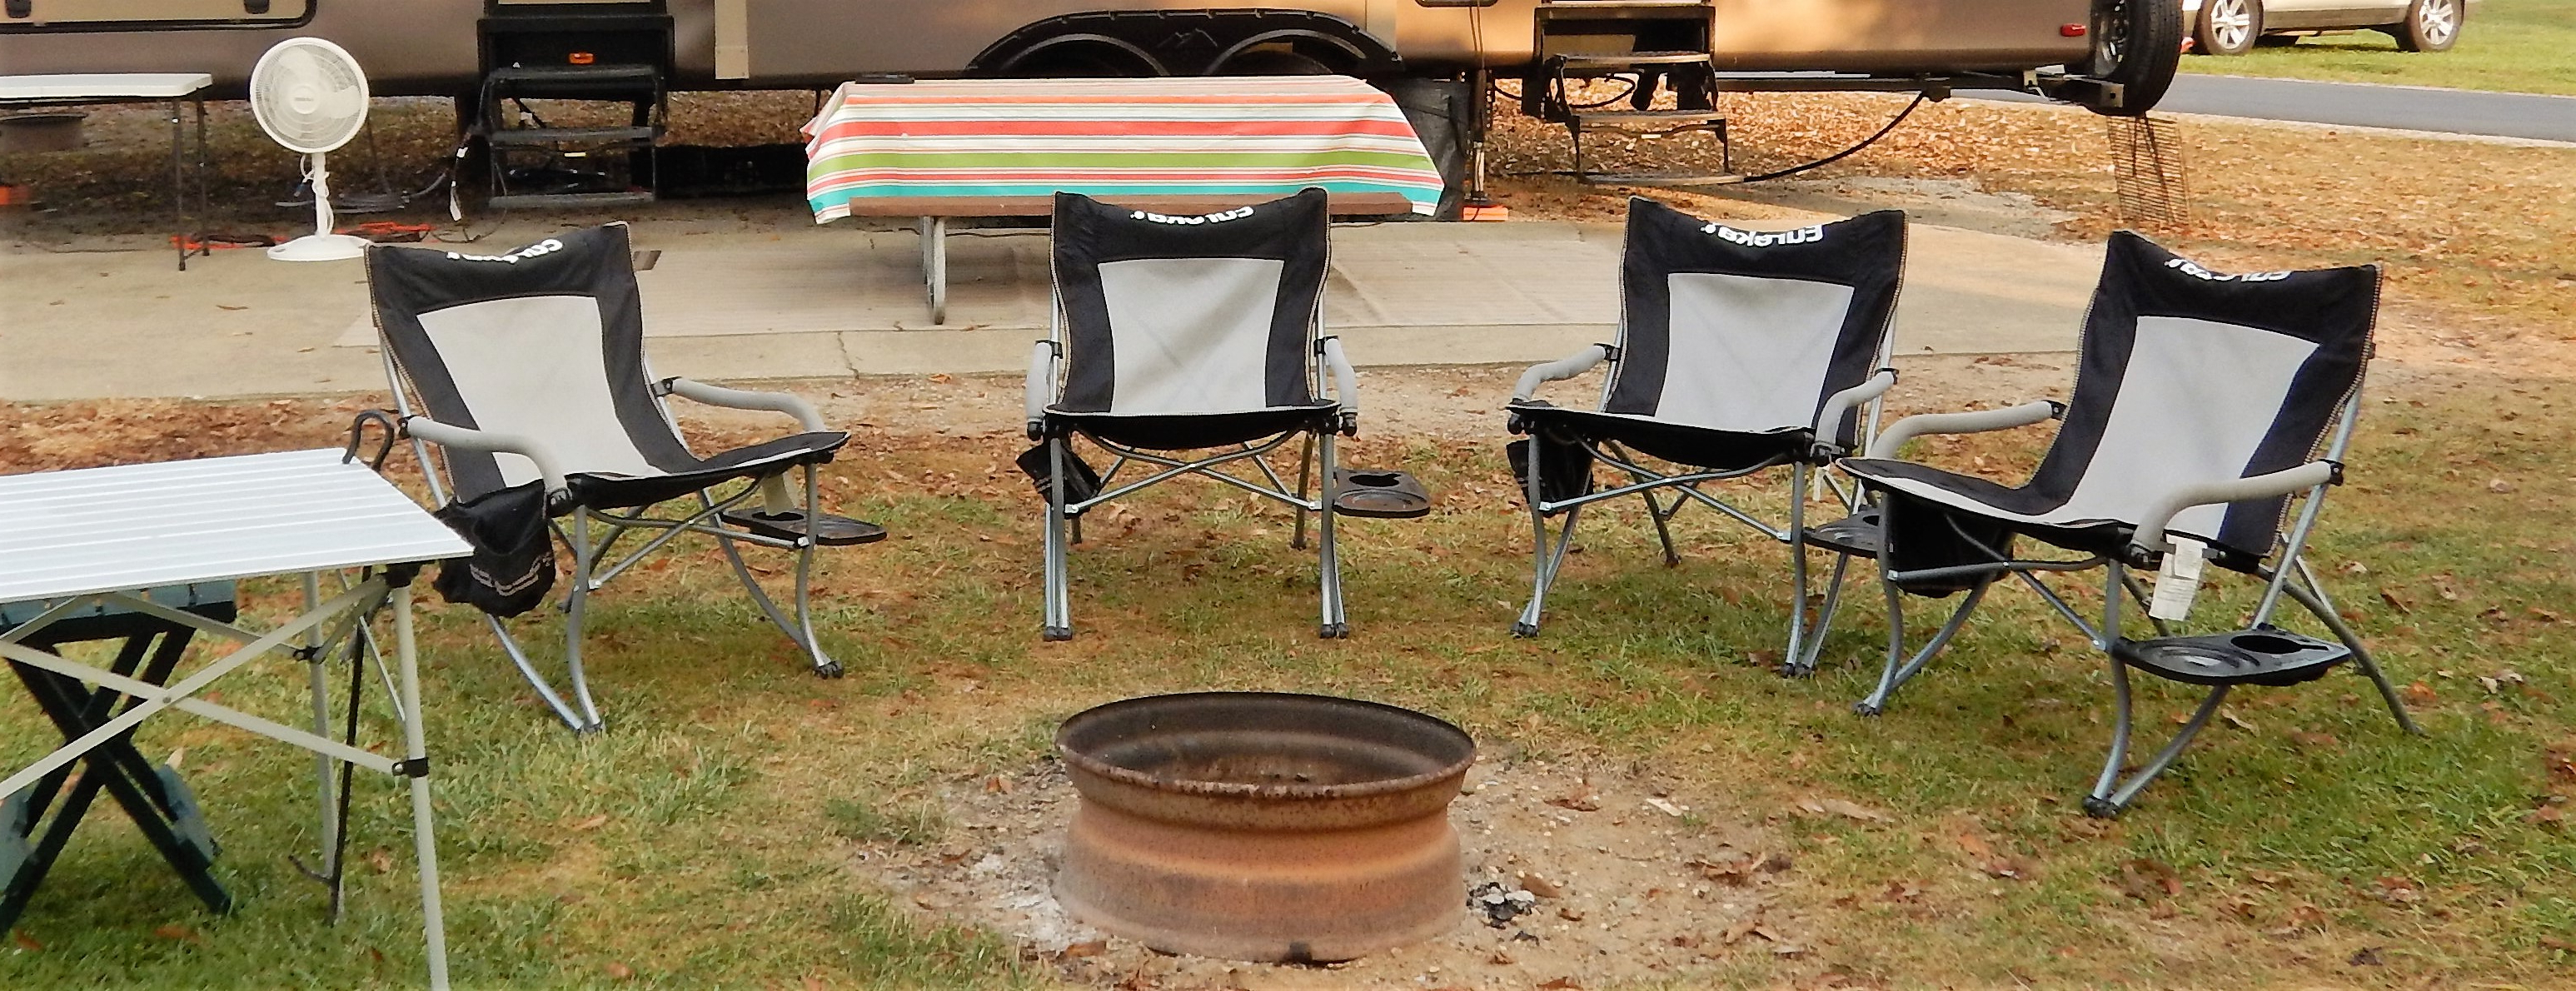 Popular Best Camping Chair For A Heavy Person (5 Heavy Duty Options) For Oversized Extra Large Chairs With Canopy And Tray (View 20 of 25)